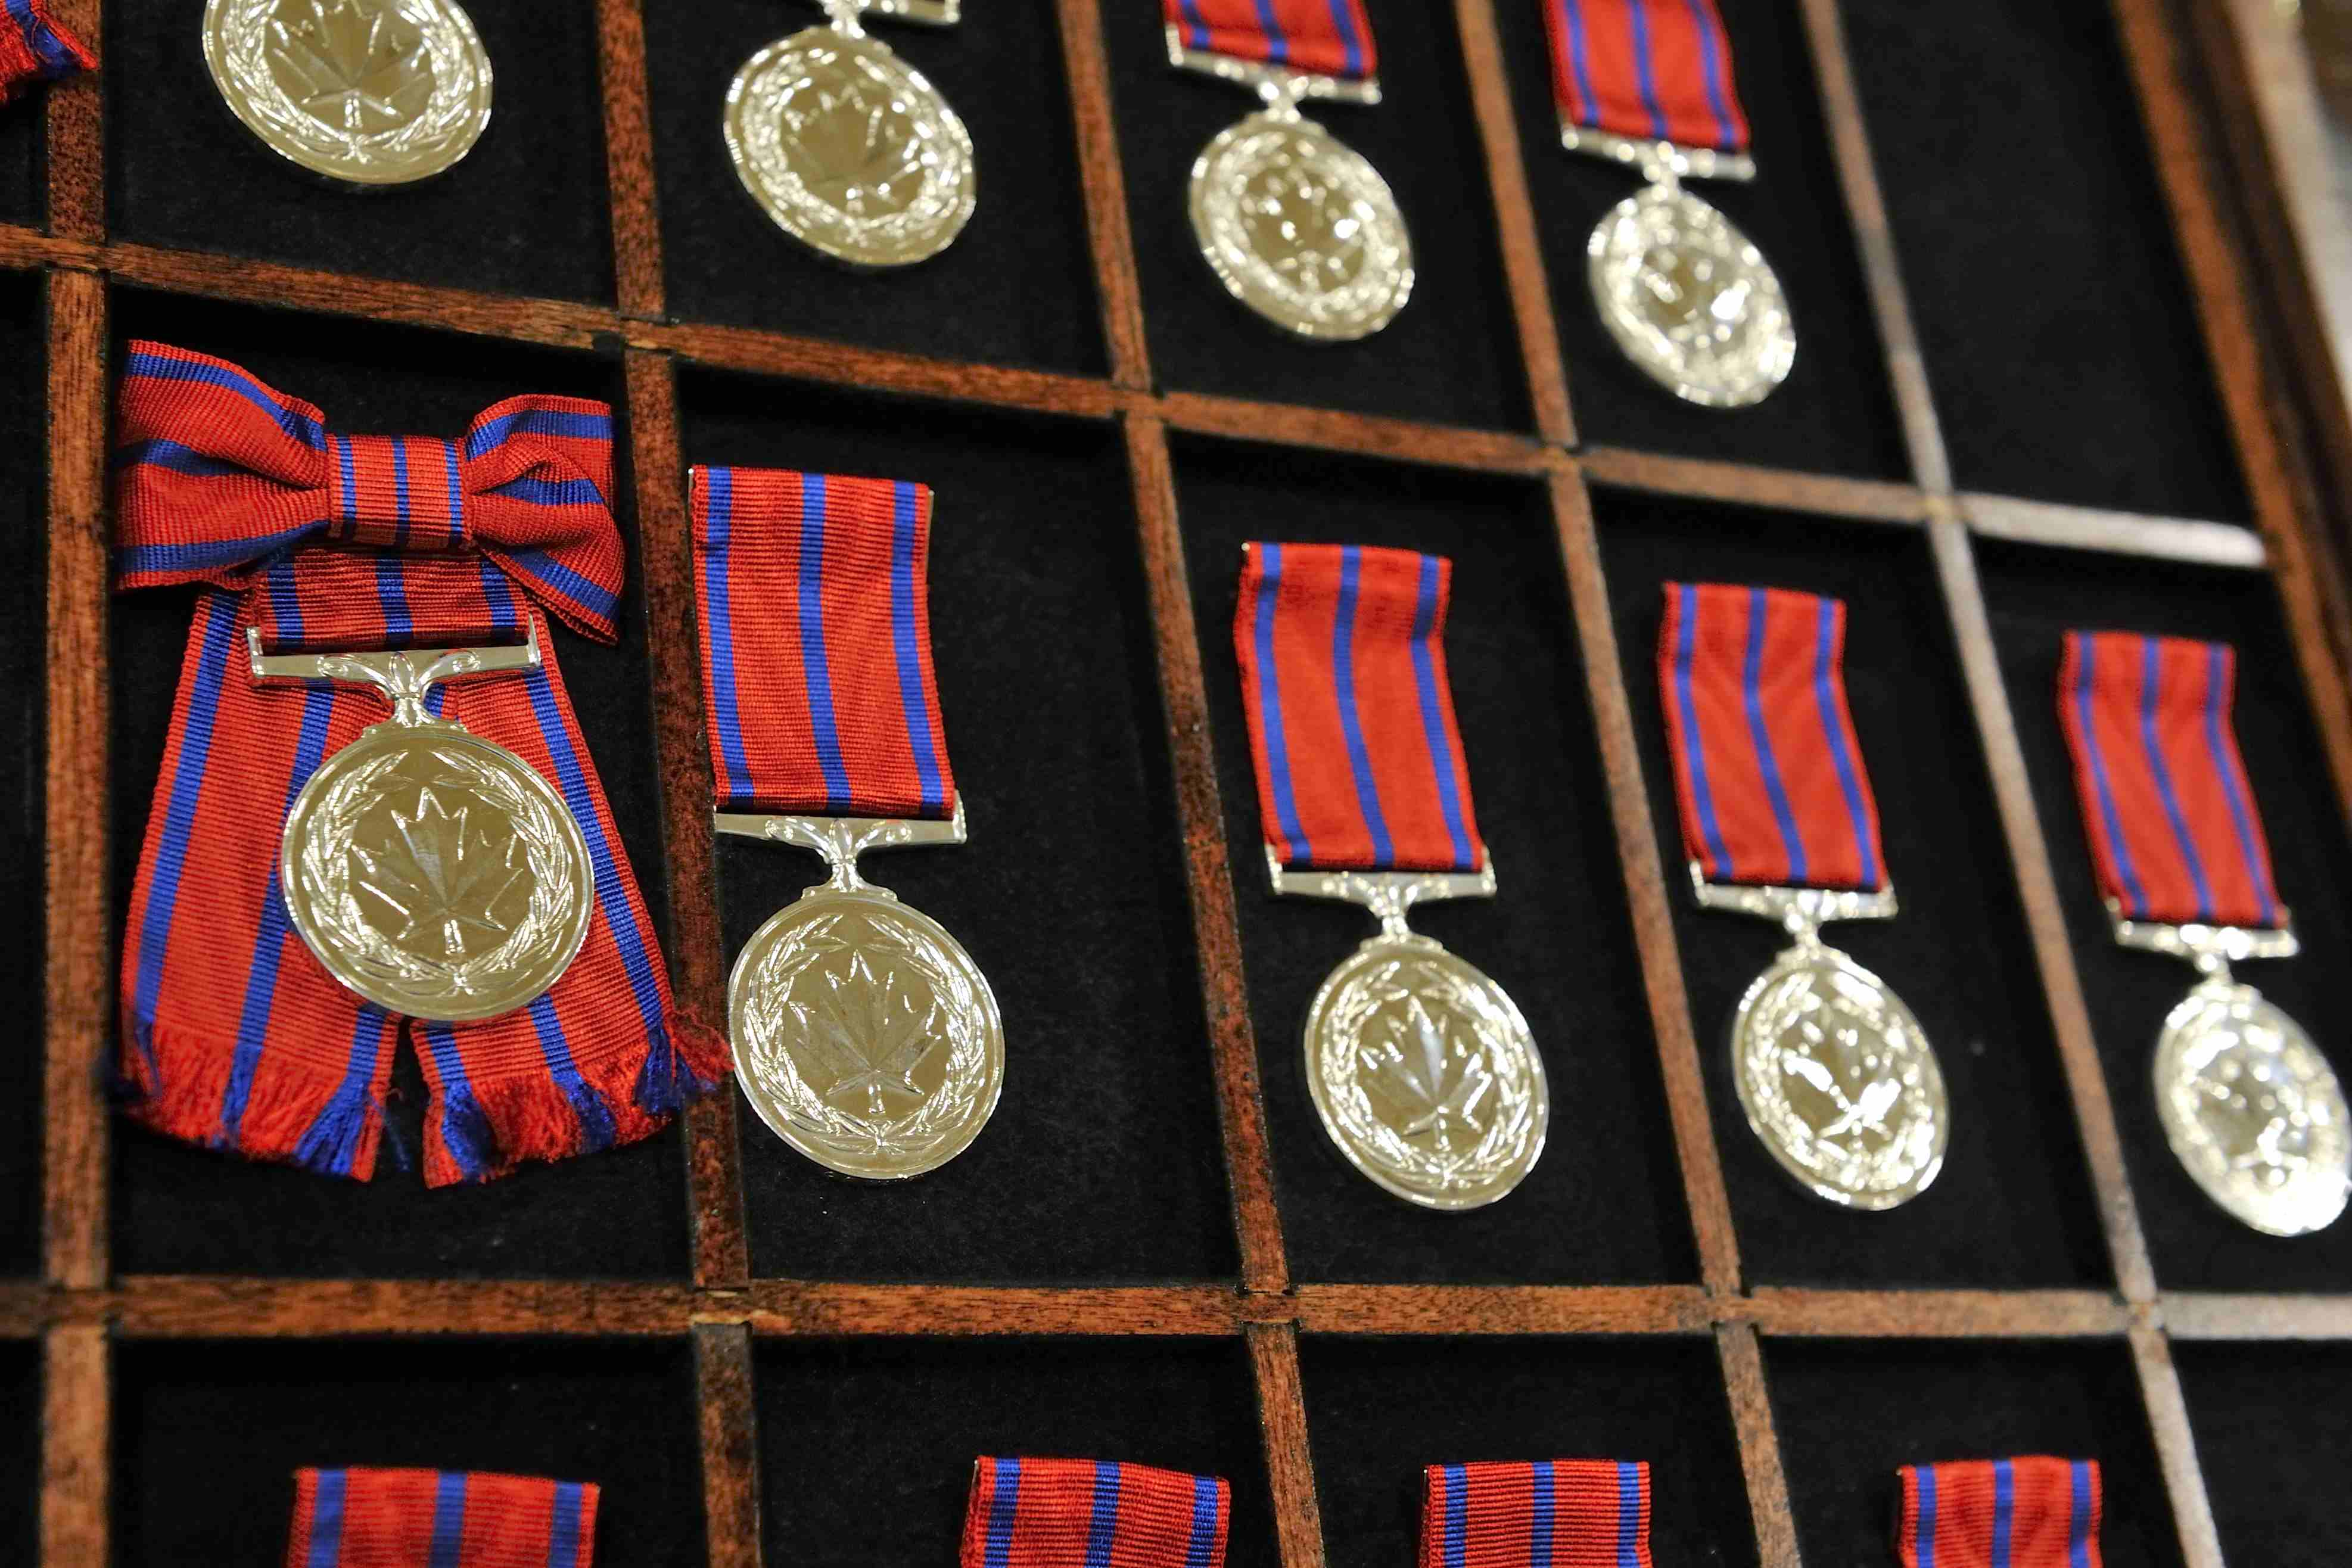 The Governor General presented 44 Medals of Bravery at a ceremony at Rideau Hall, on October 12, 2012. This ceremony marked the 40th anniversary of the creation of the Decorations for Bravery.